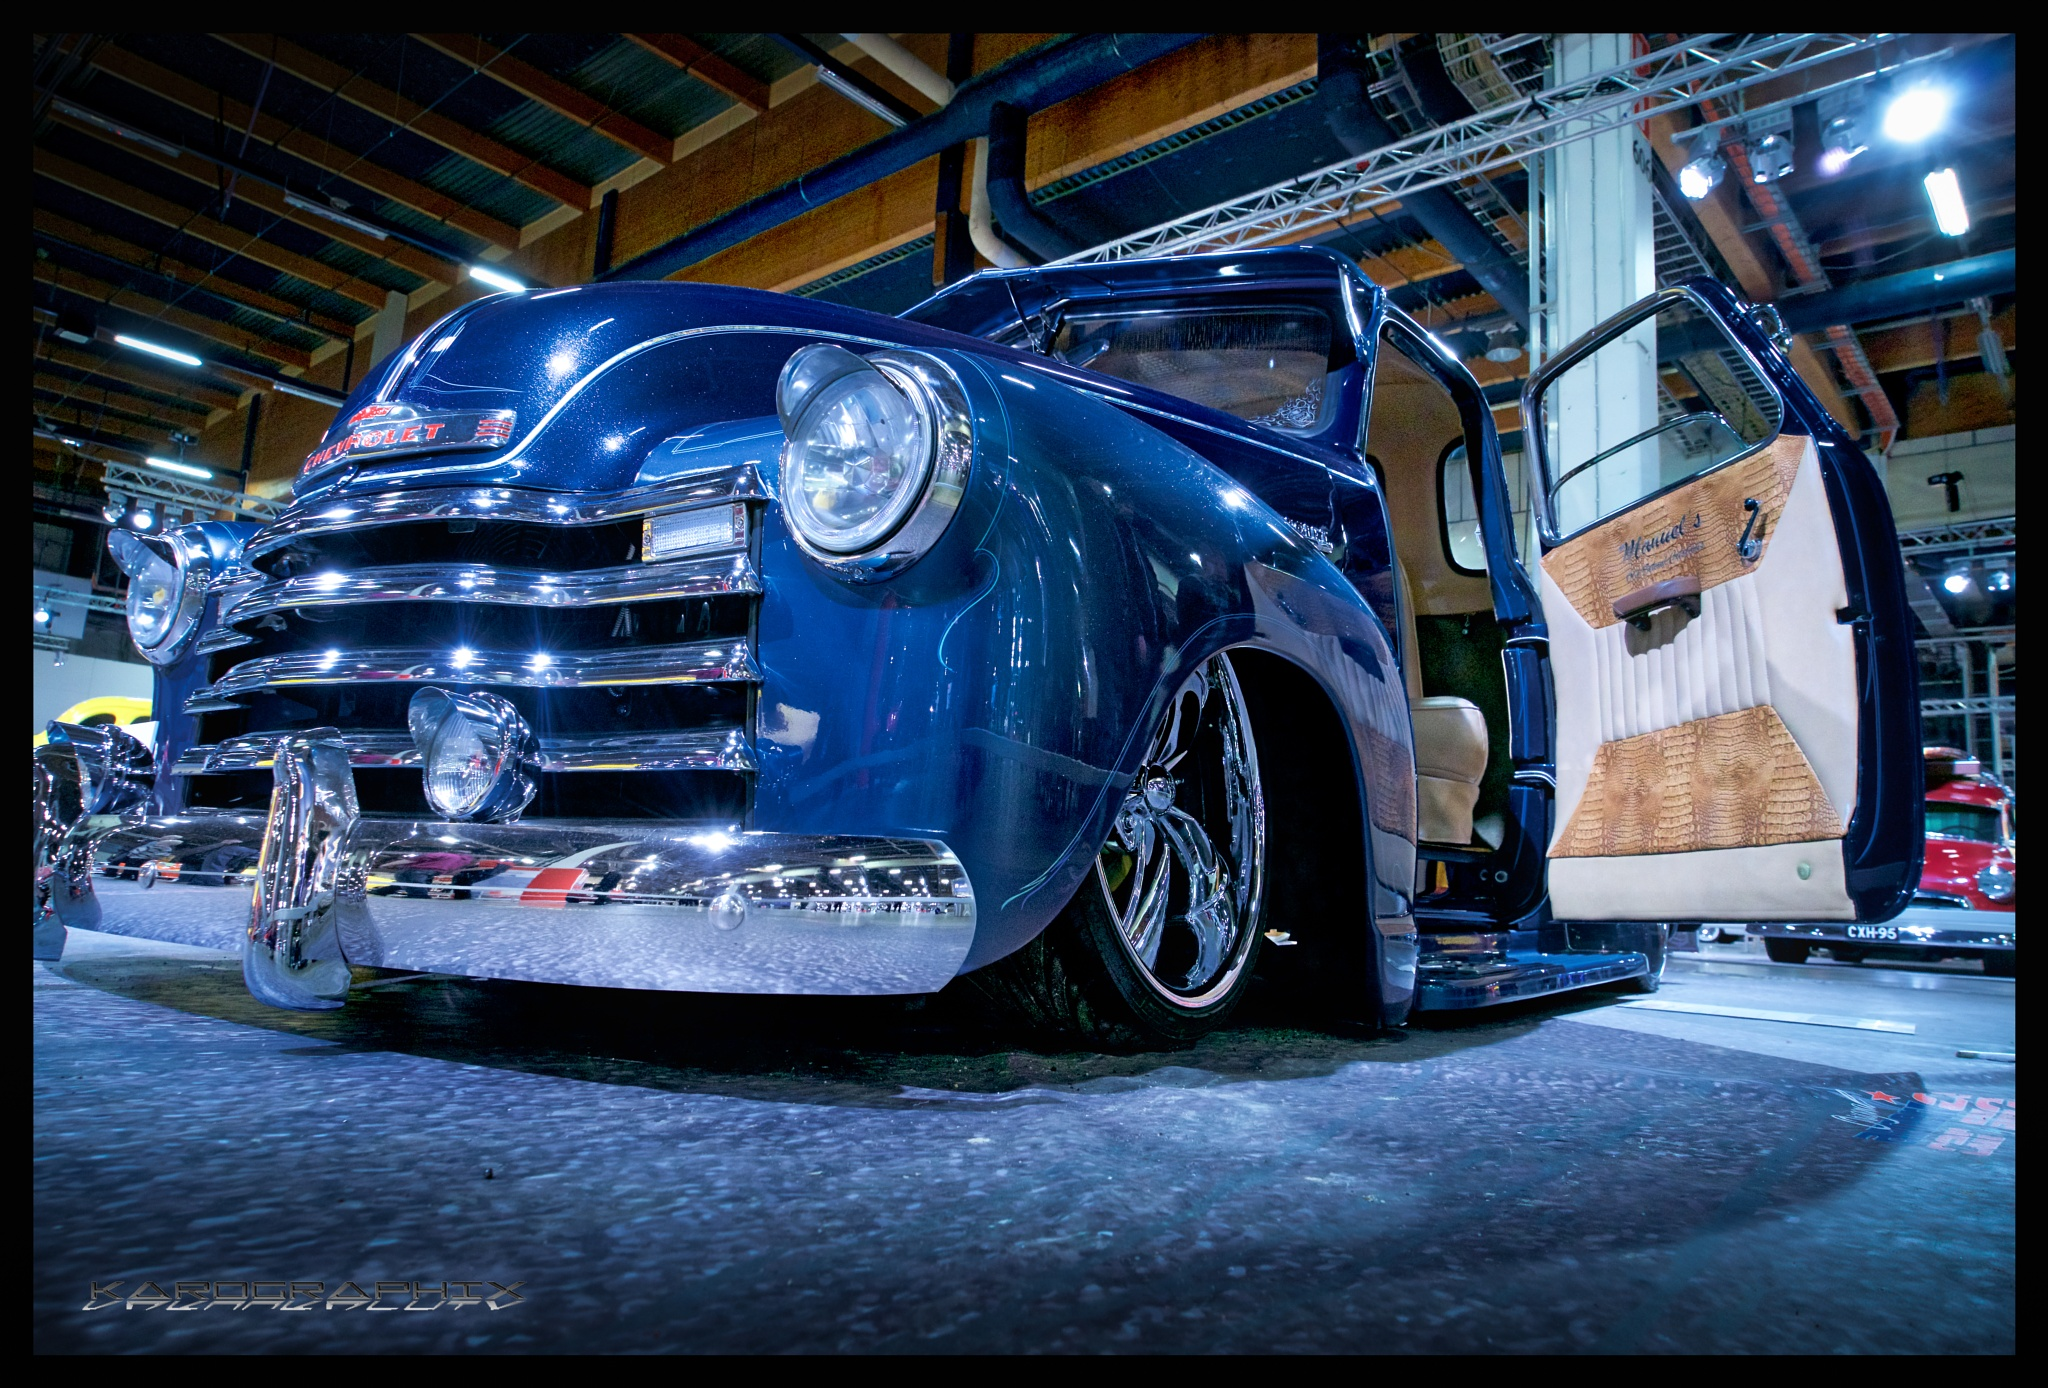 Chevy pick up from 50's by Karographix